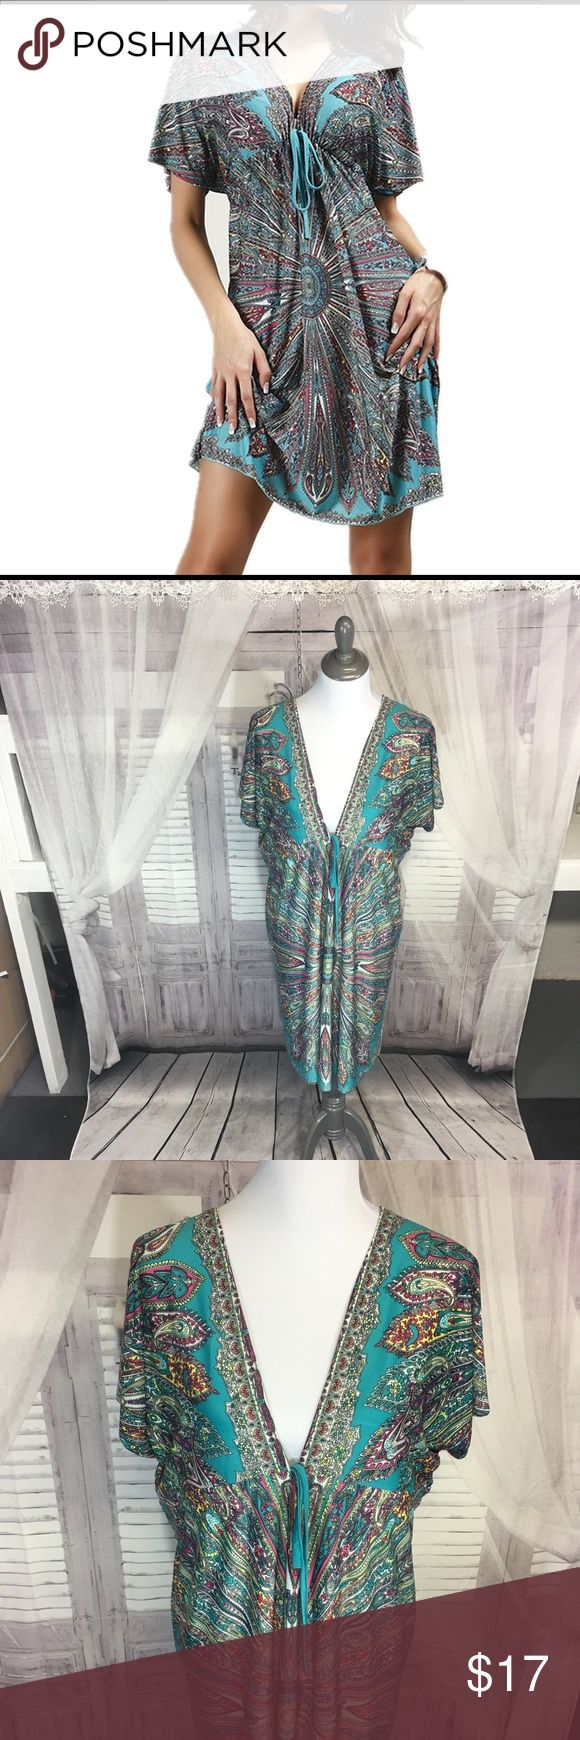 Swim suit cover up Brand new -Ladies tunic dress style swimsuit cover up.  Beautiful colors. Chiffon loose and light weight material.  One size fits small, medium and large. *Listing is for swimsuit cover up only but accessories can be found in shop. Swim Coverups